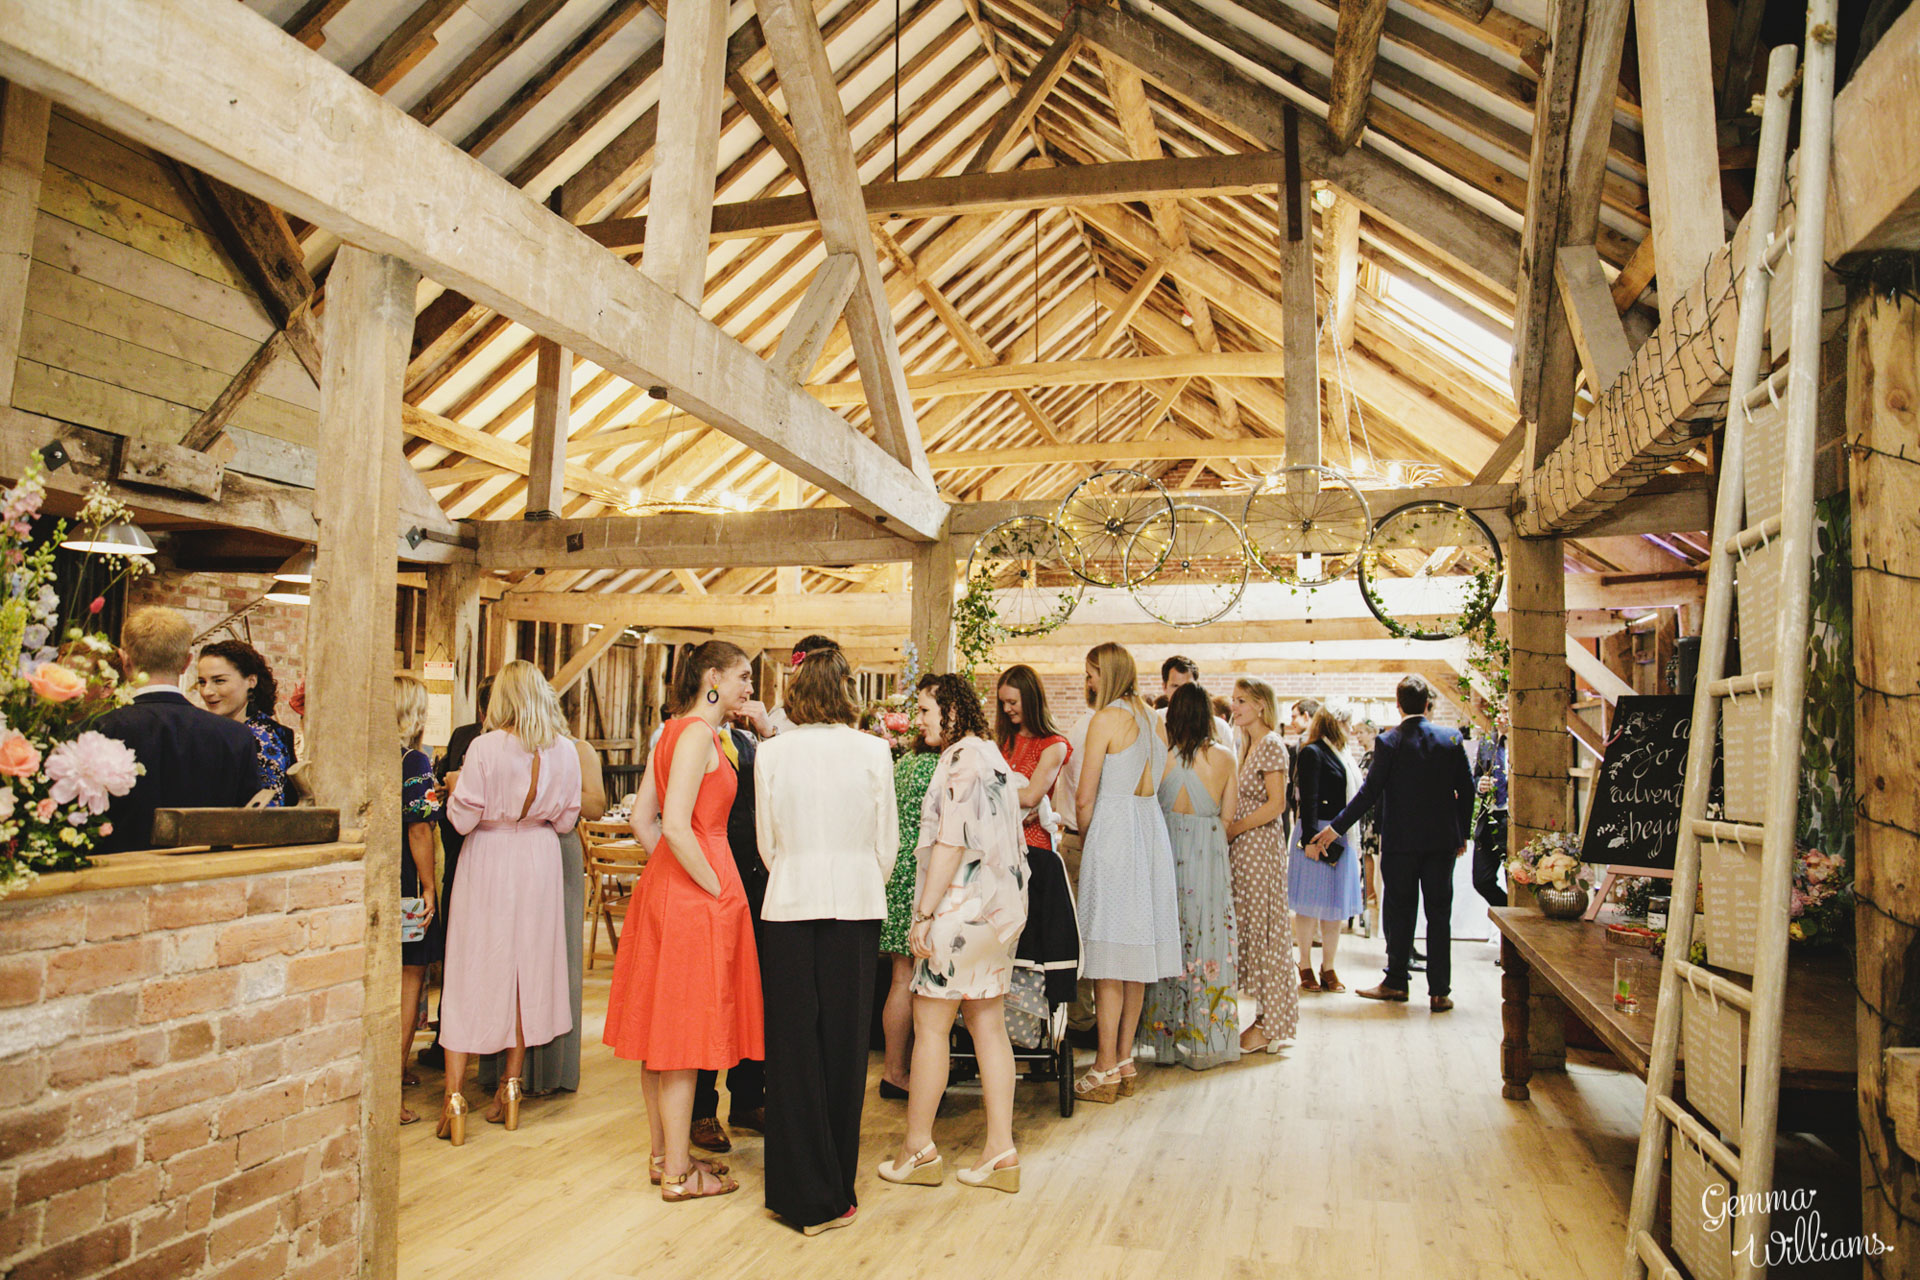 HaybarnWedding_GemmaWilliamsPhoto128.jpg